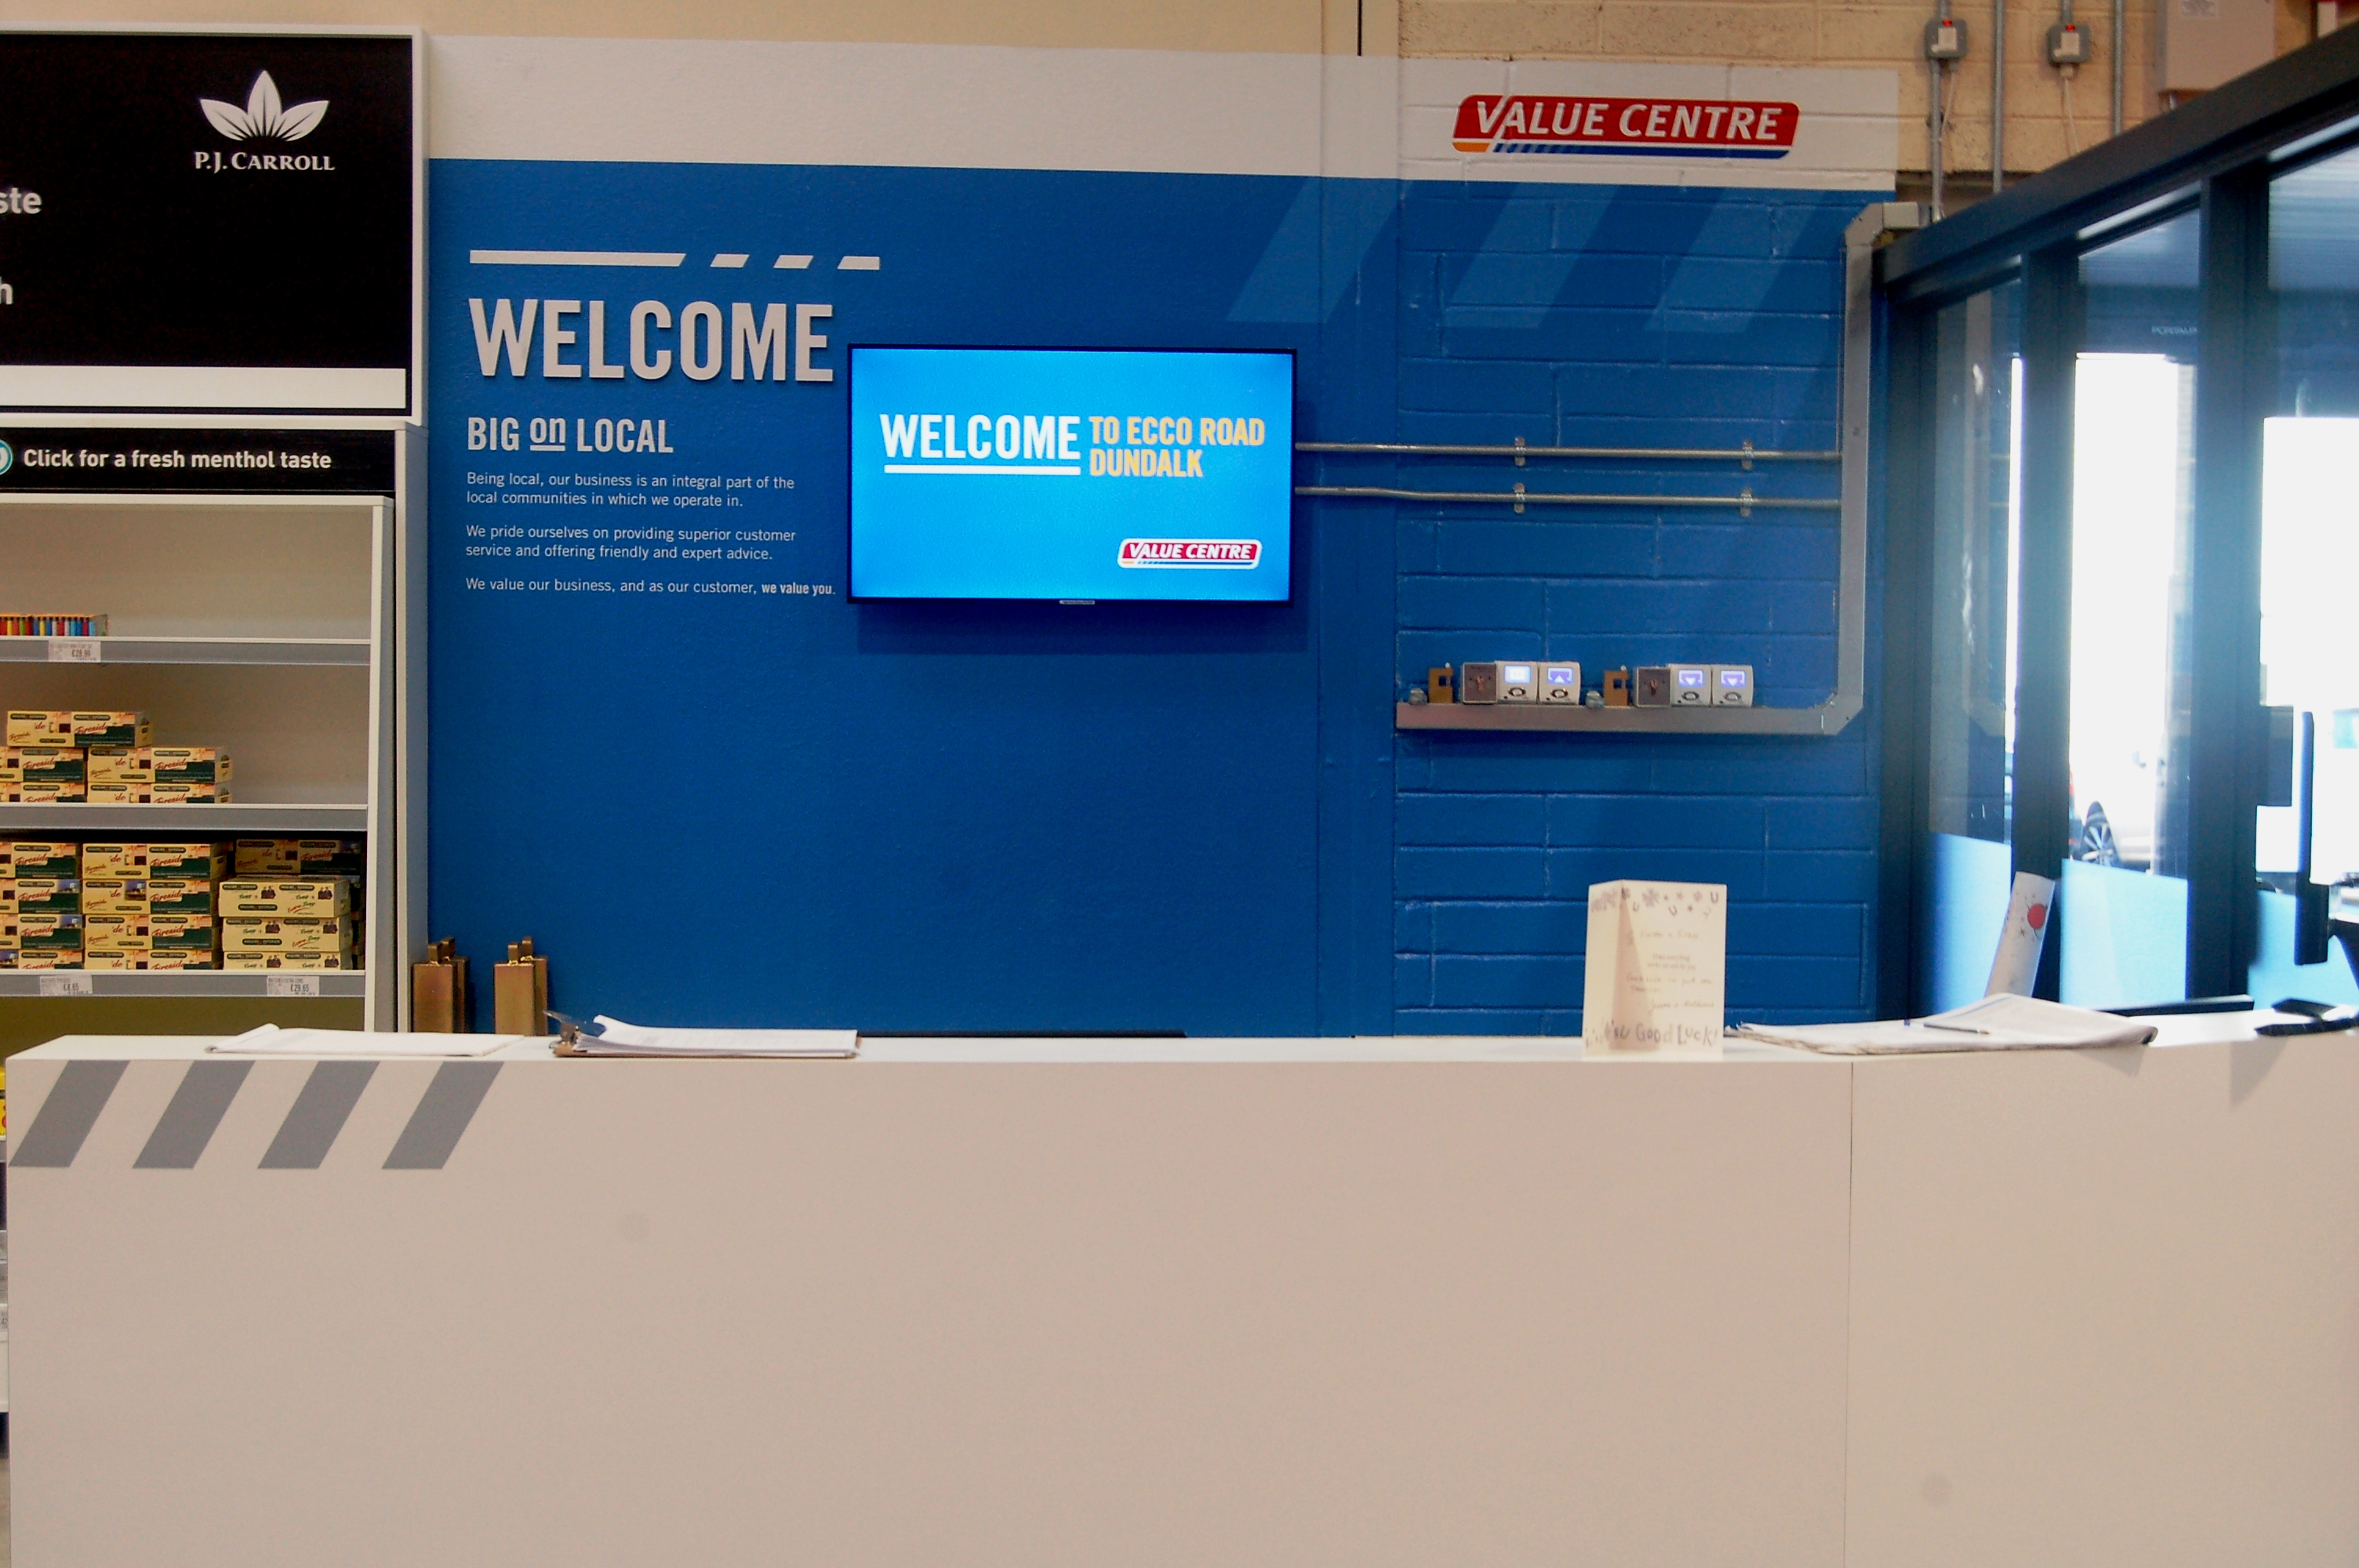 bwg value centre digital roll out digital screen